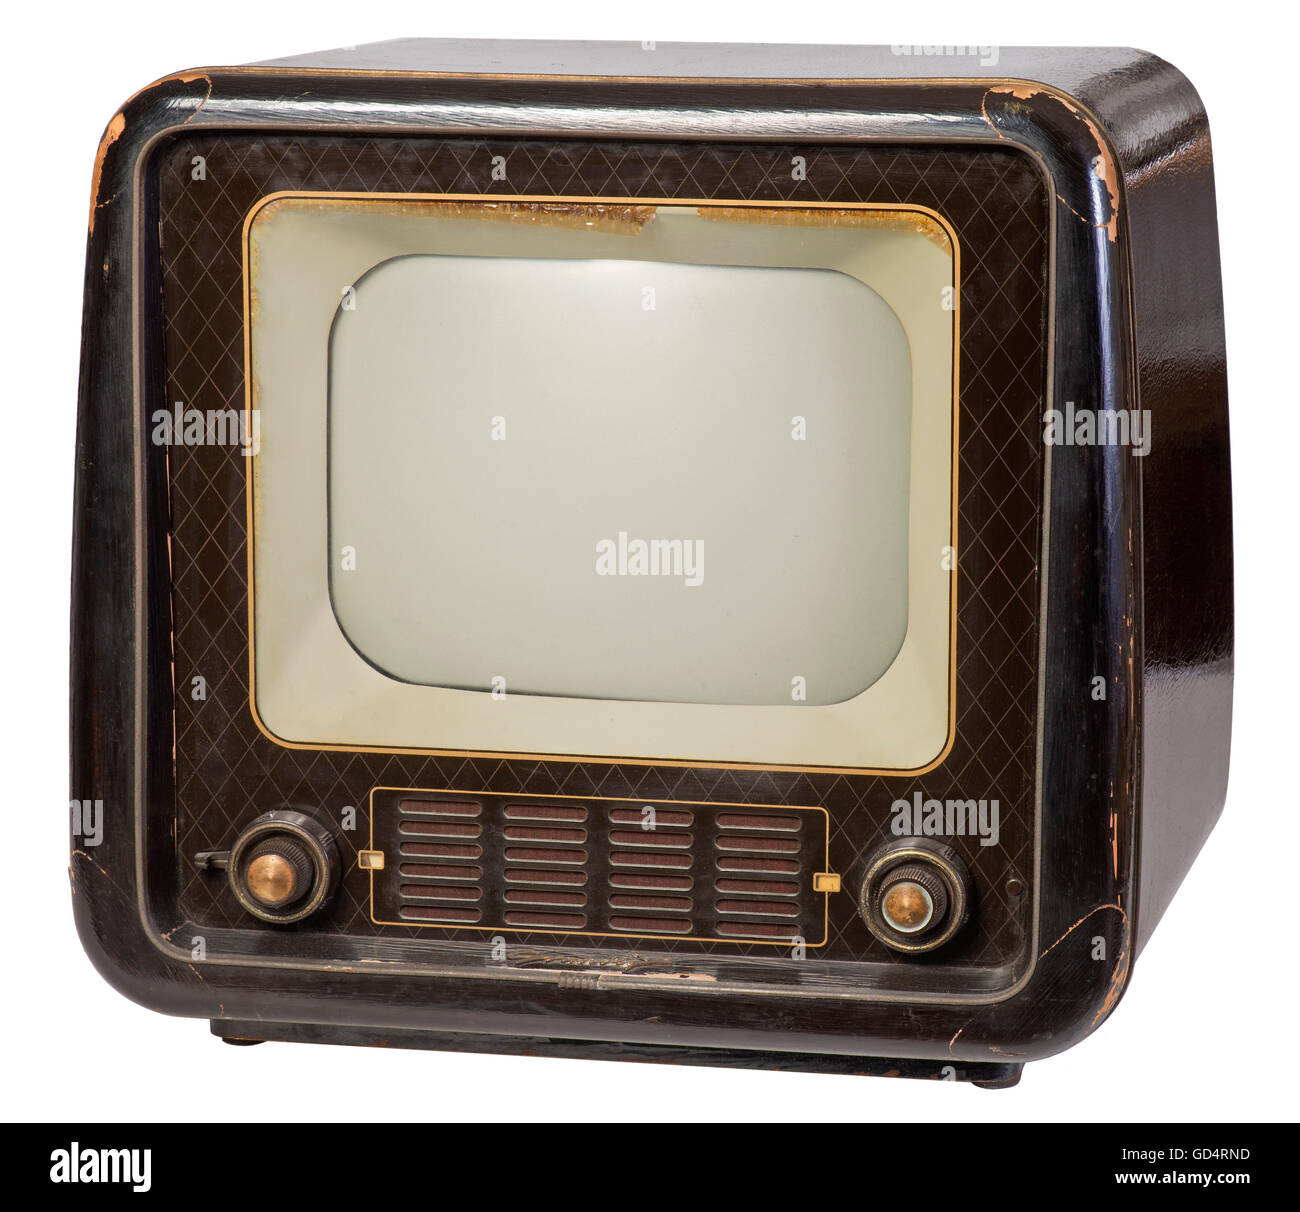 broadcast, television, Grundig, 210, first German television set for less than 1000 mark, Germany, 1953, tabletop - Stock Image